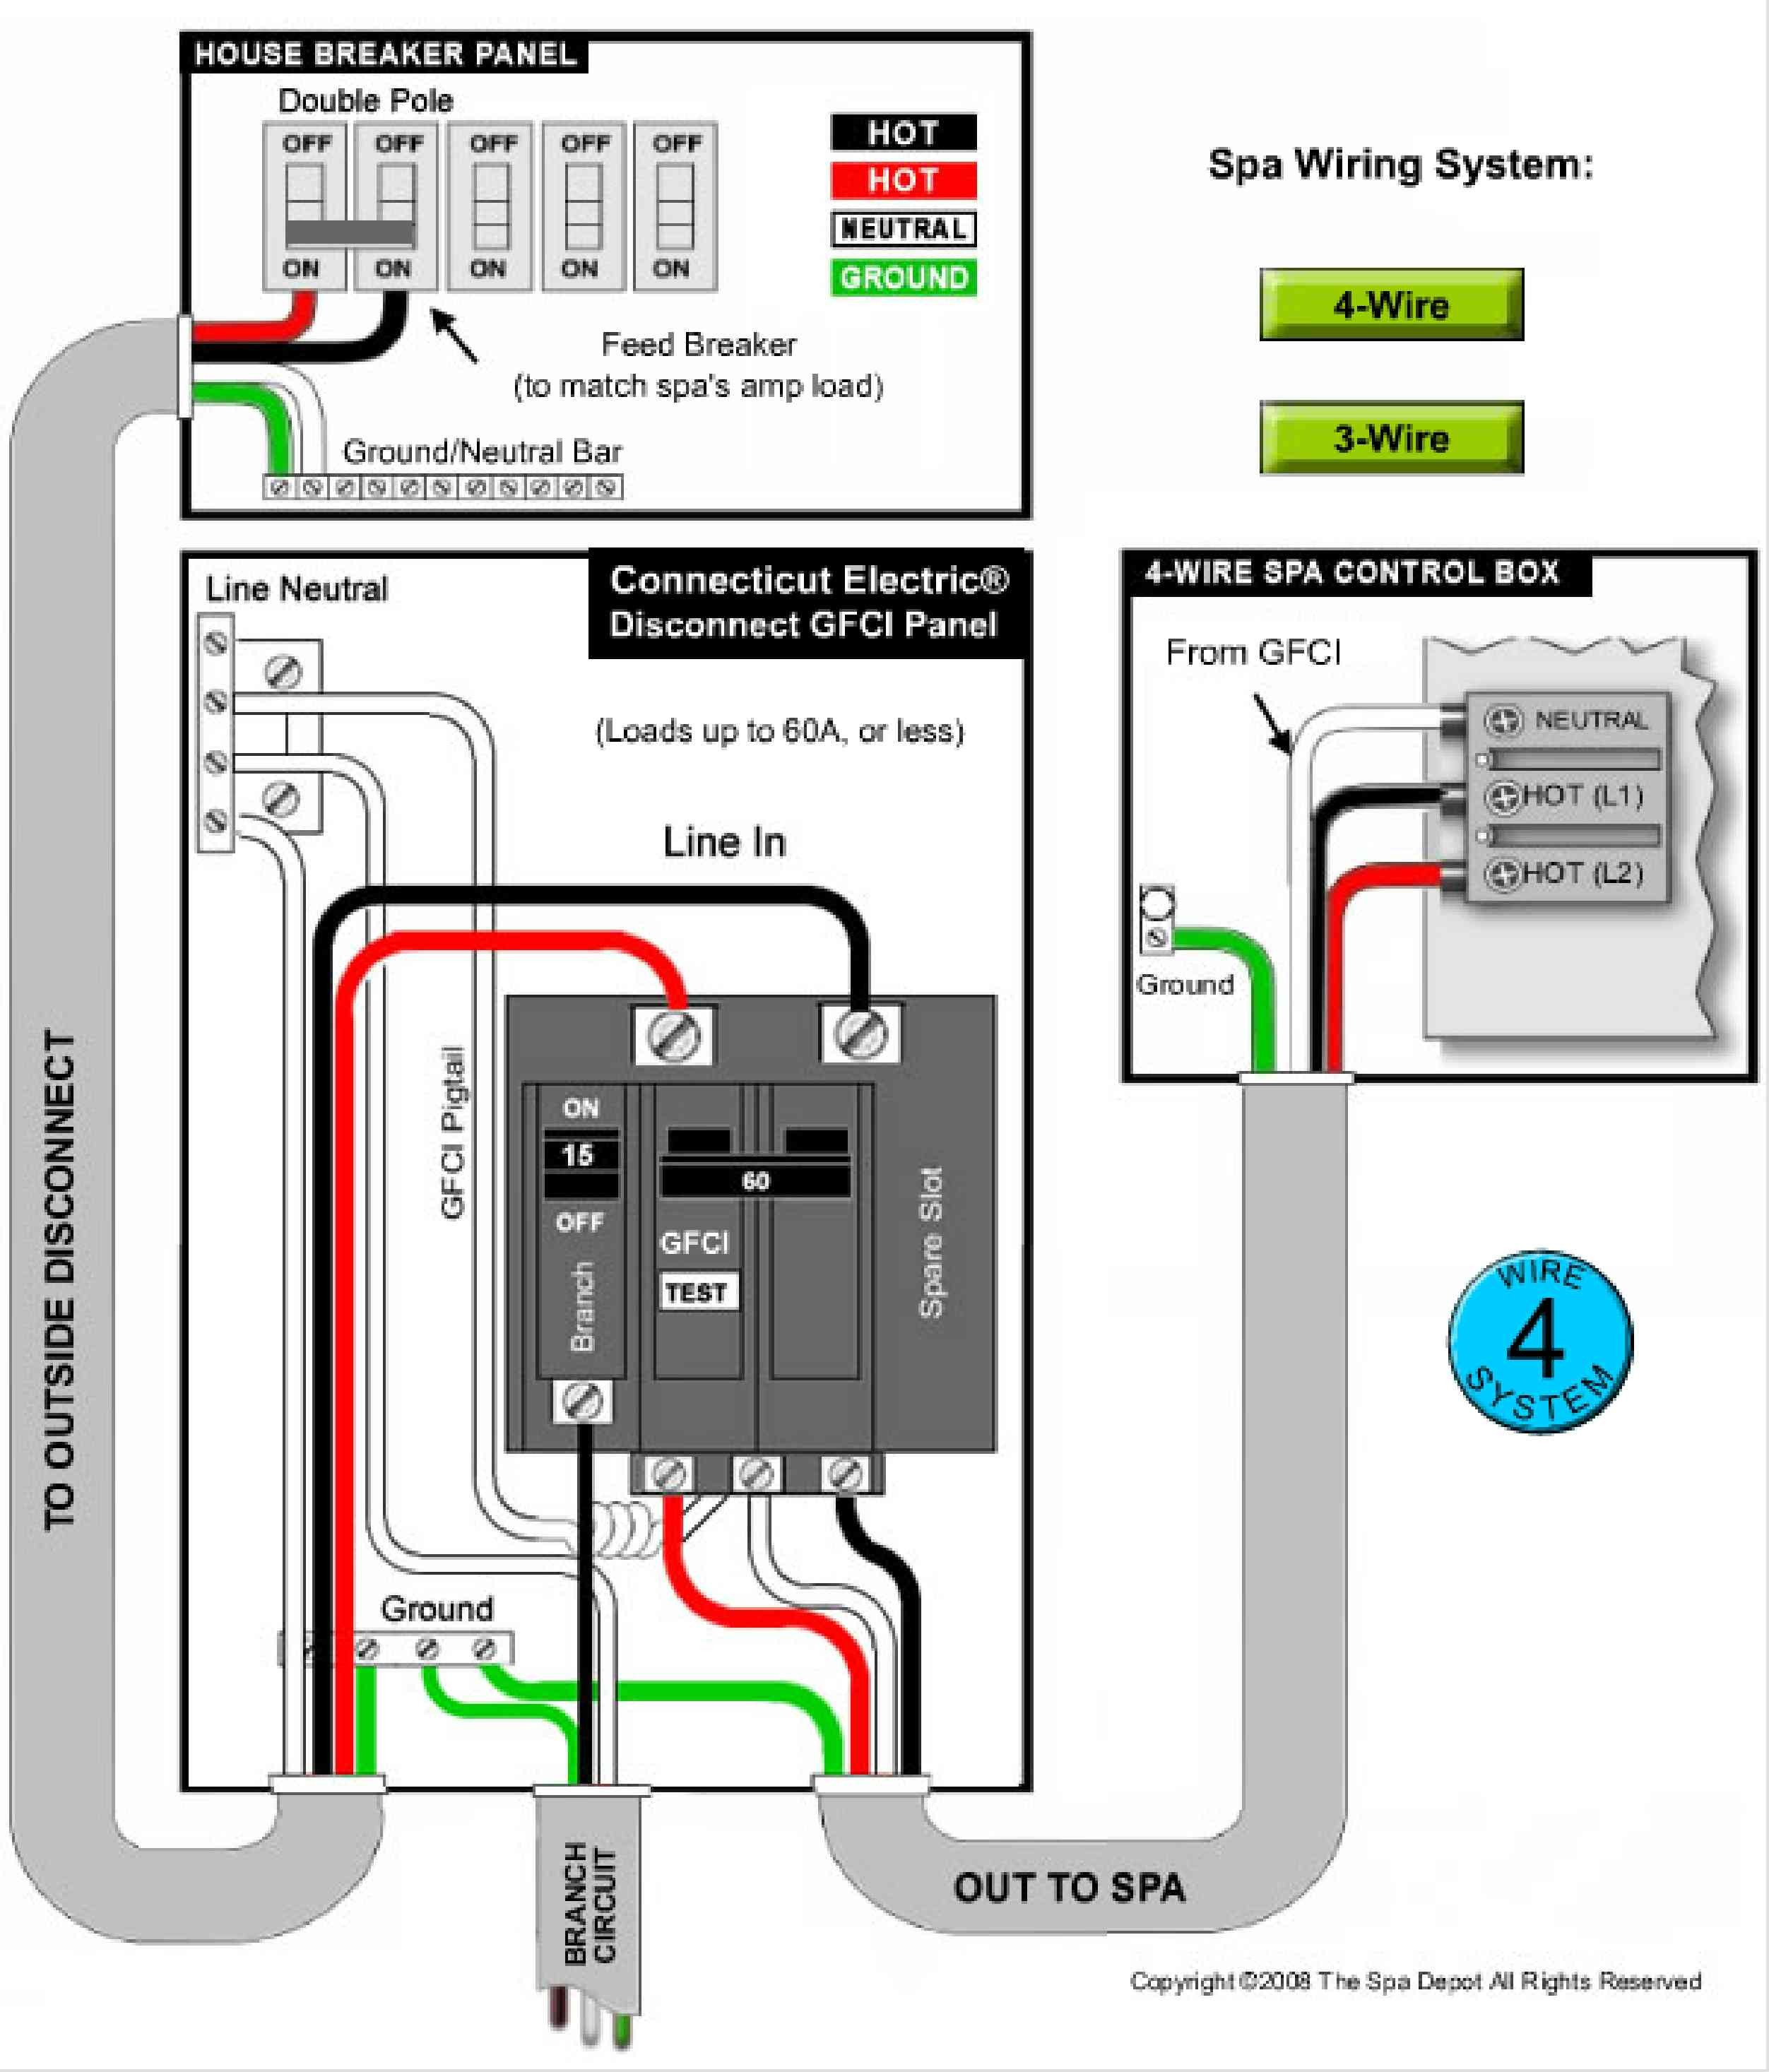 220v hot tub wiring diagram gallery wiring diagram sample 220 volt hot tub wiring diagram 220v hot tub wiring diagram download luxury hot tub wiring diagram 11 e